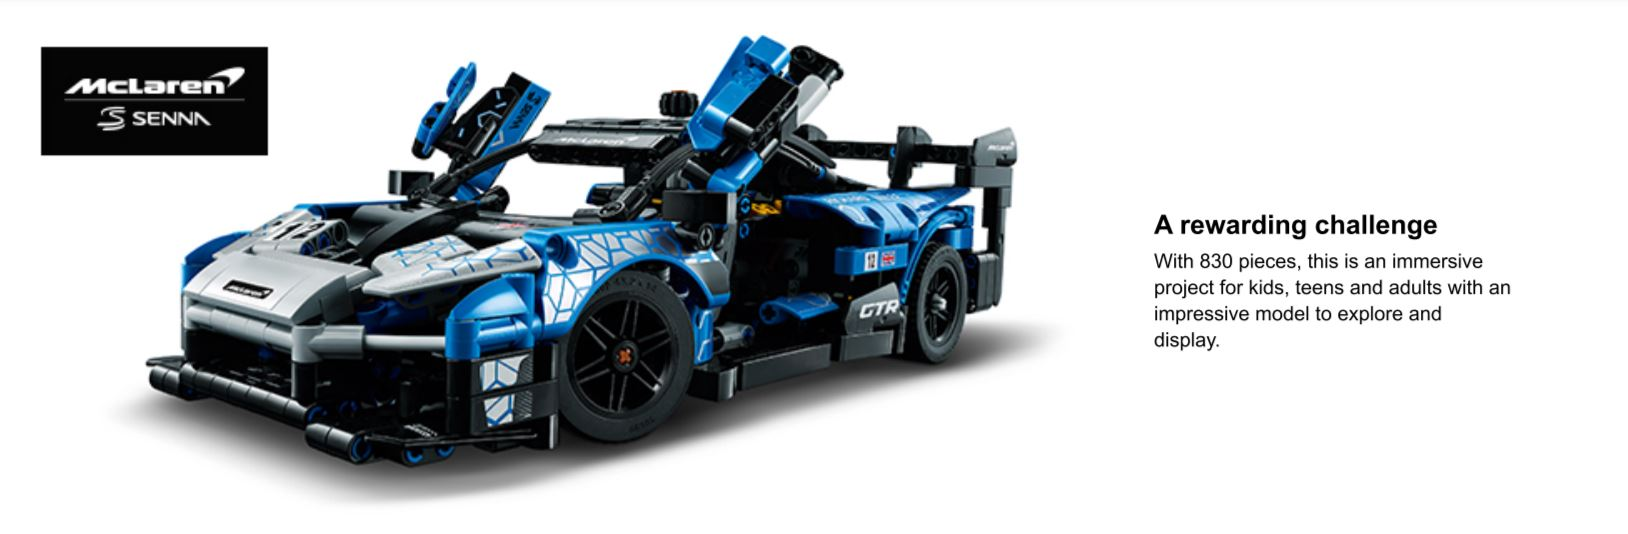 lego mclaren car shot